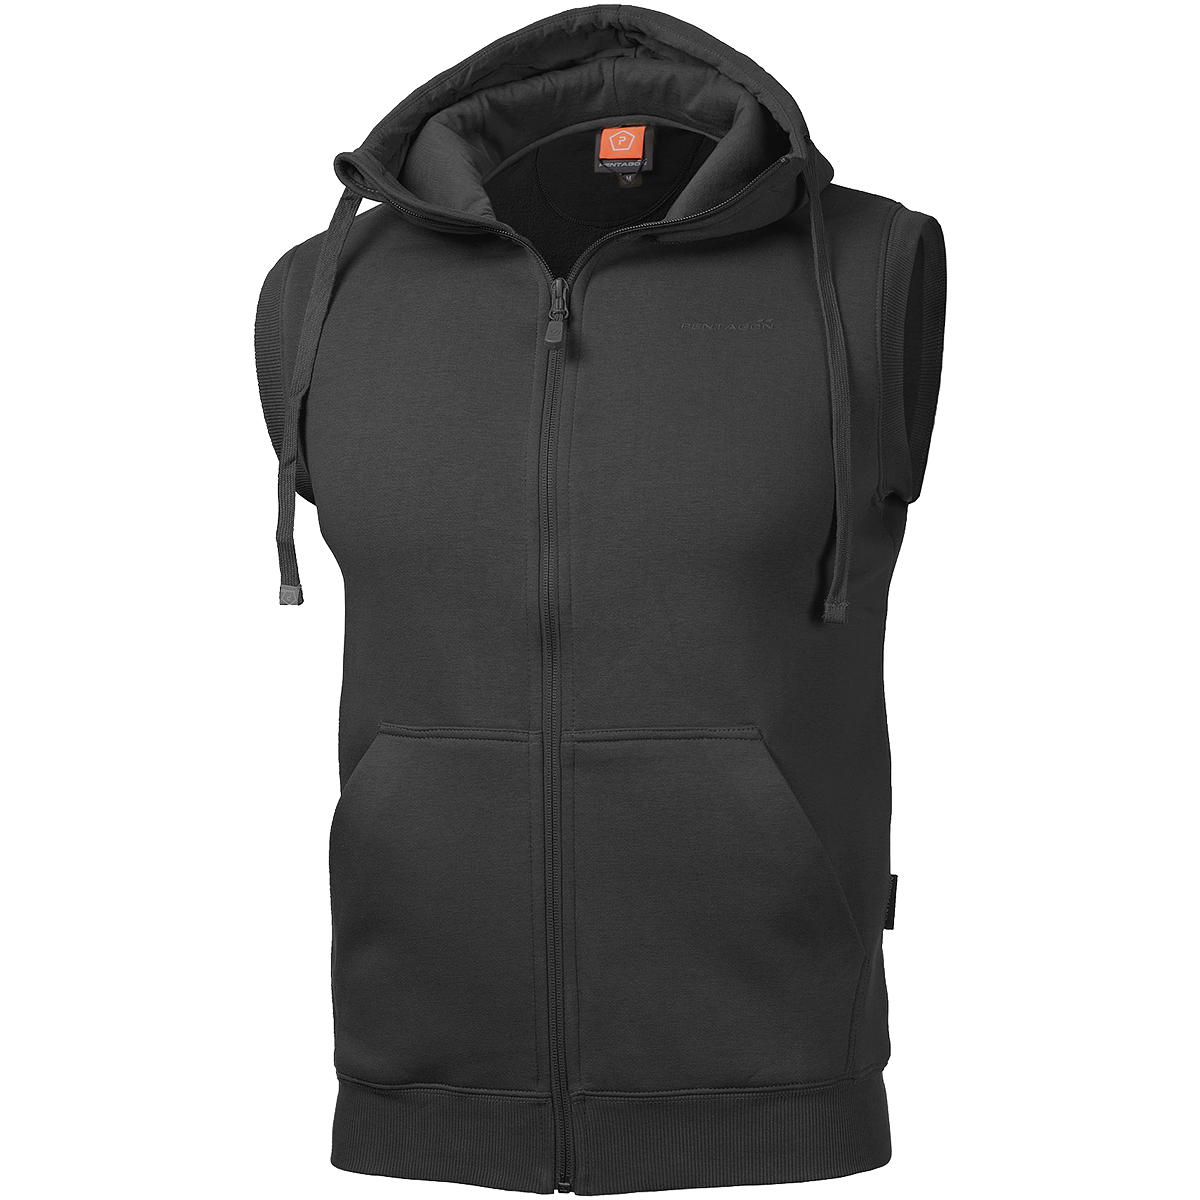 Pentagon Thespis Mens Tactical Sleeveless Armless Hoodie Vest Body Warmer Gillet